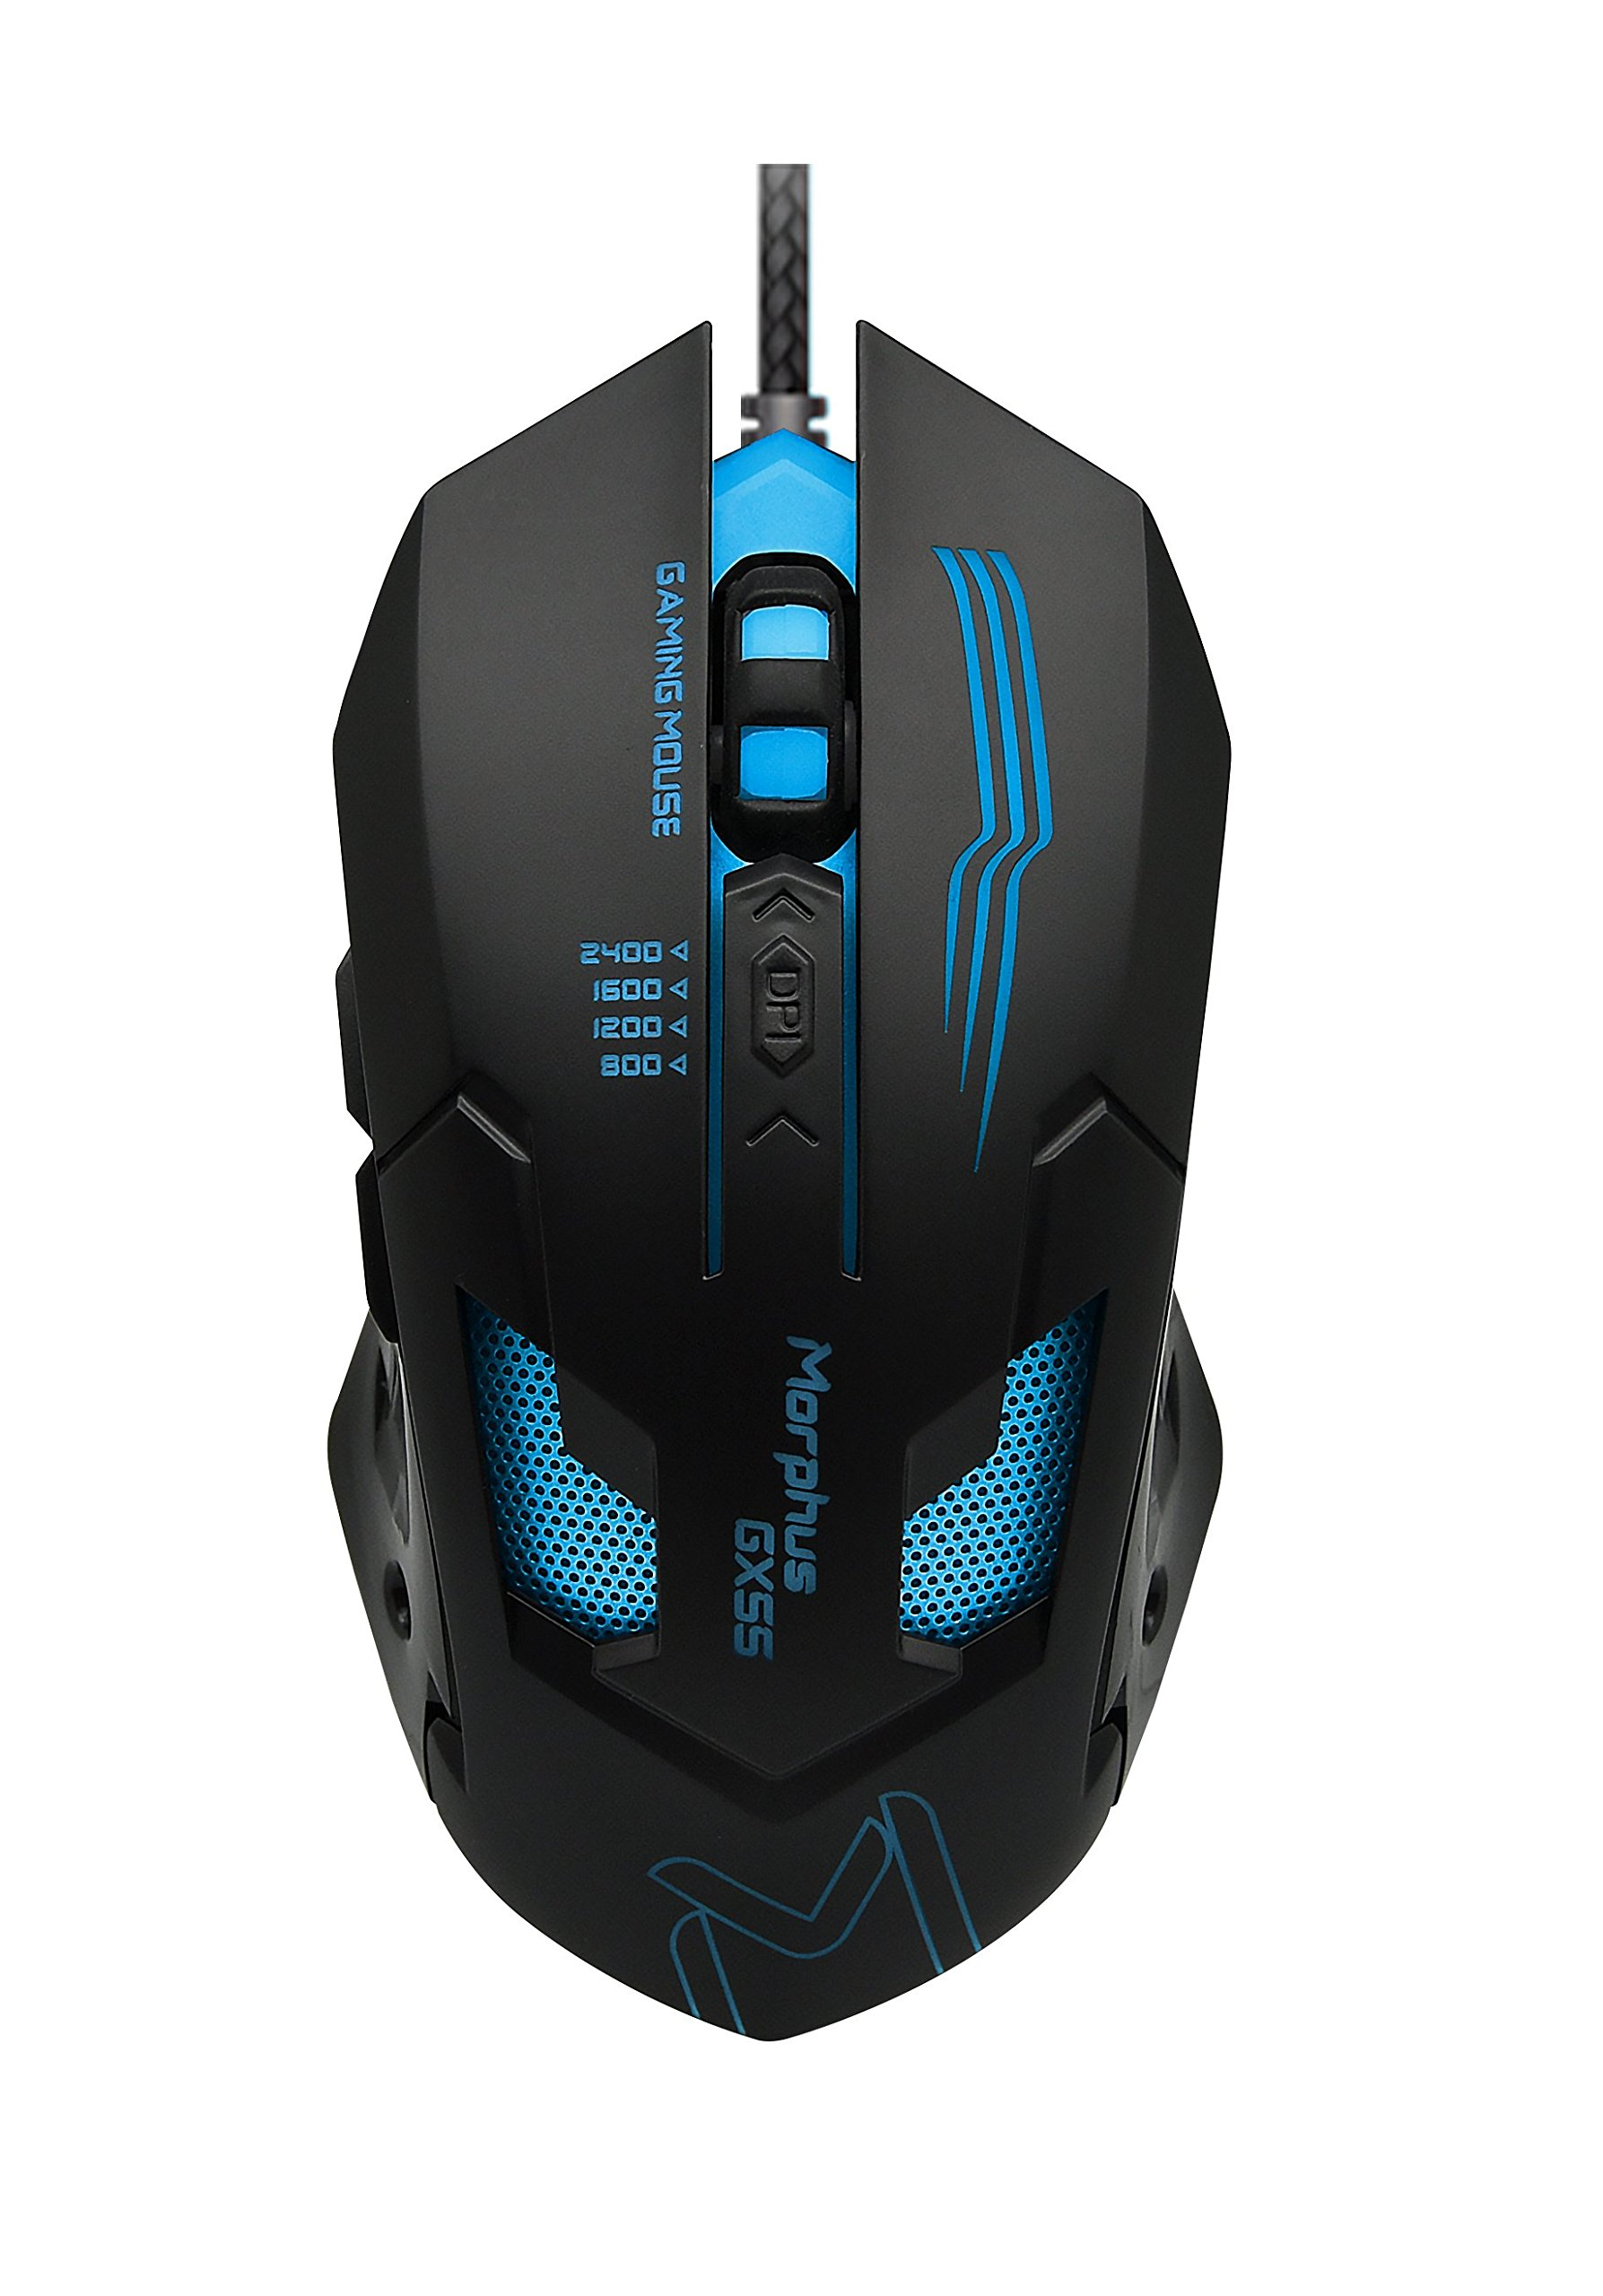 AIKUN MORPHUS Gaming Mouse (GX55), 6 Buttons, 3200 4 Adjustable DPI Levels, 7 Circular & Breathing LED Light, Wired Mouse Used for Games and Office by Aikun